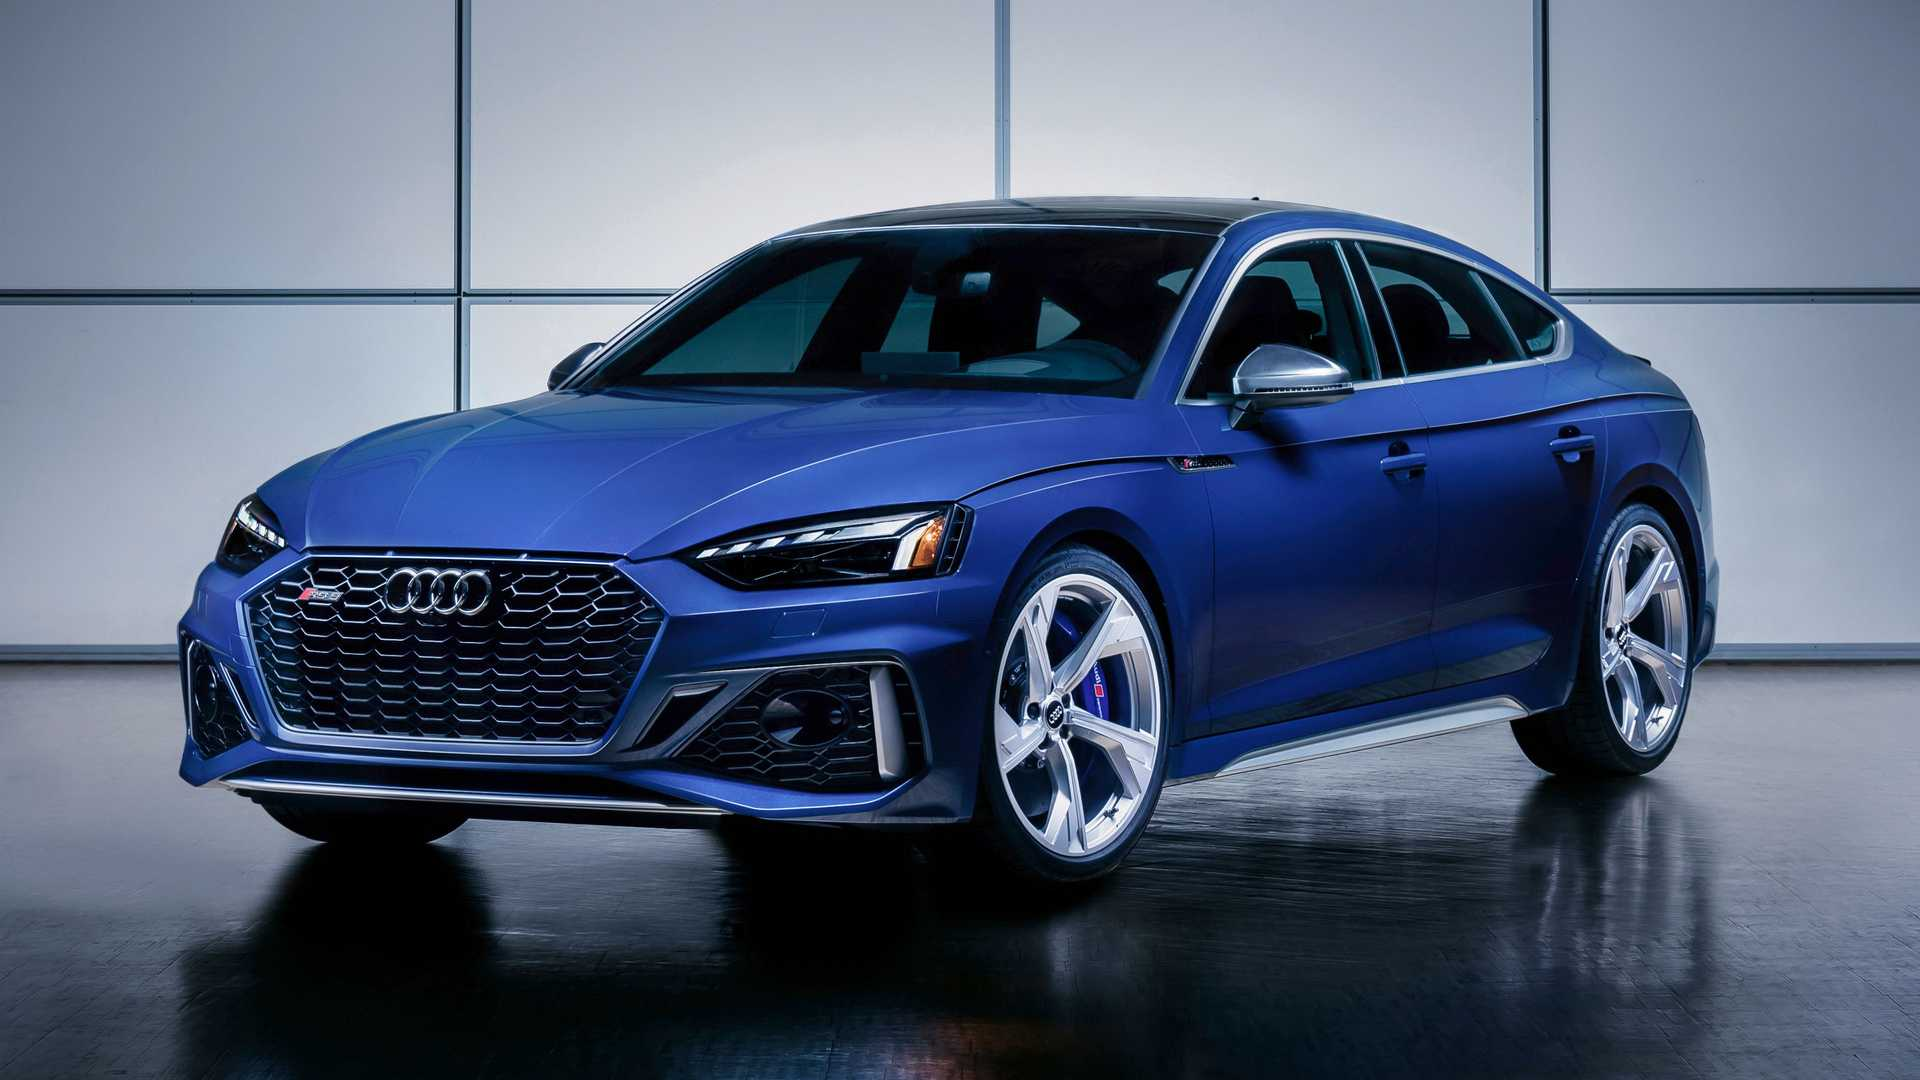 2021 Audi RS5 Coupe & Sportback Get Styling Tweaks, 2 Special Editions